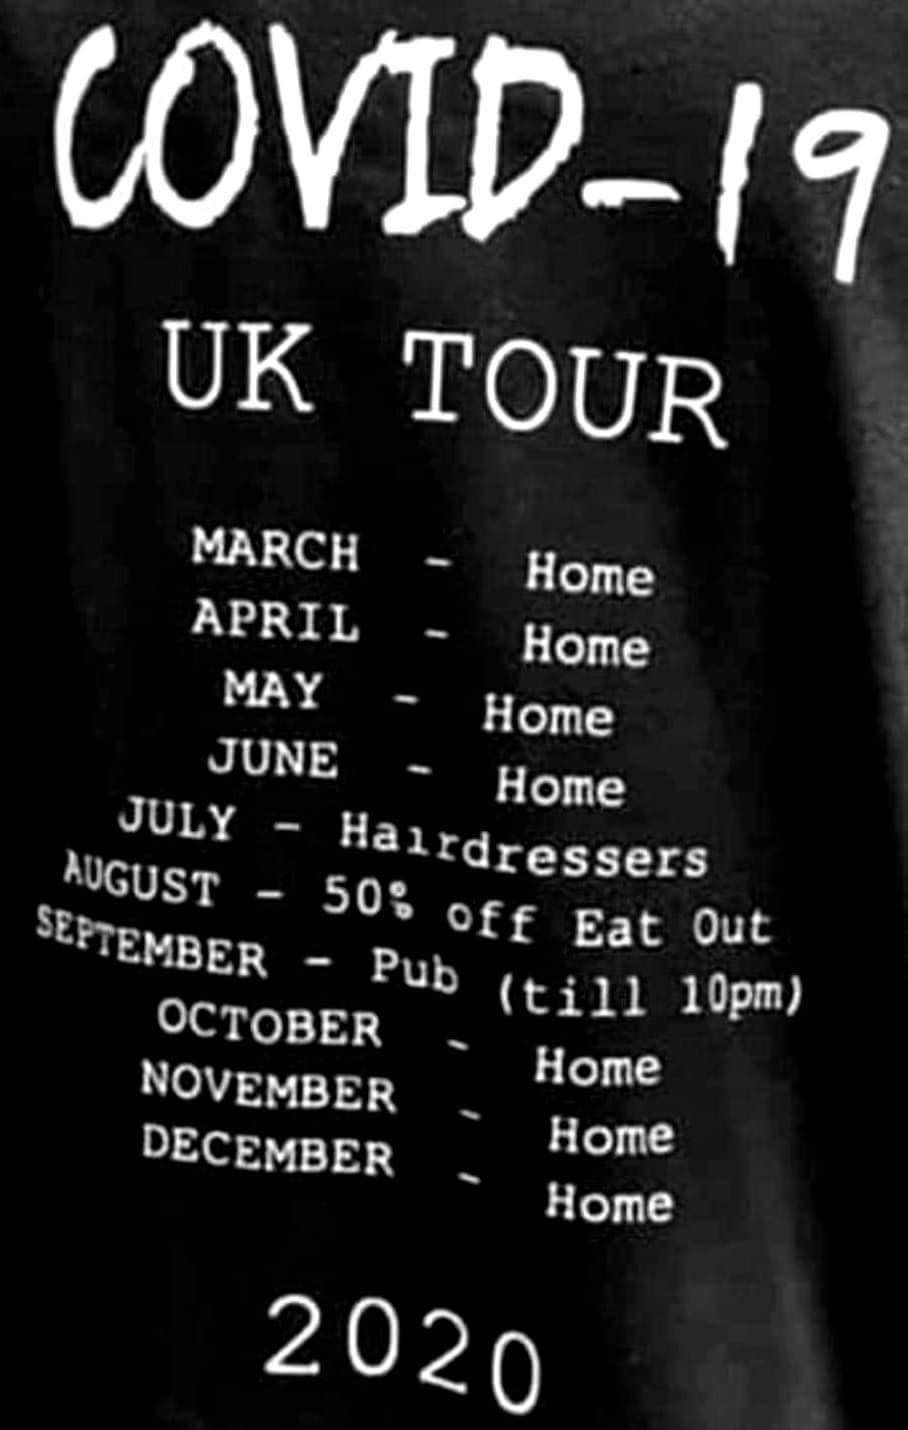 Next year's tour dates to be announced soon! 😀